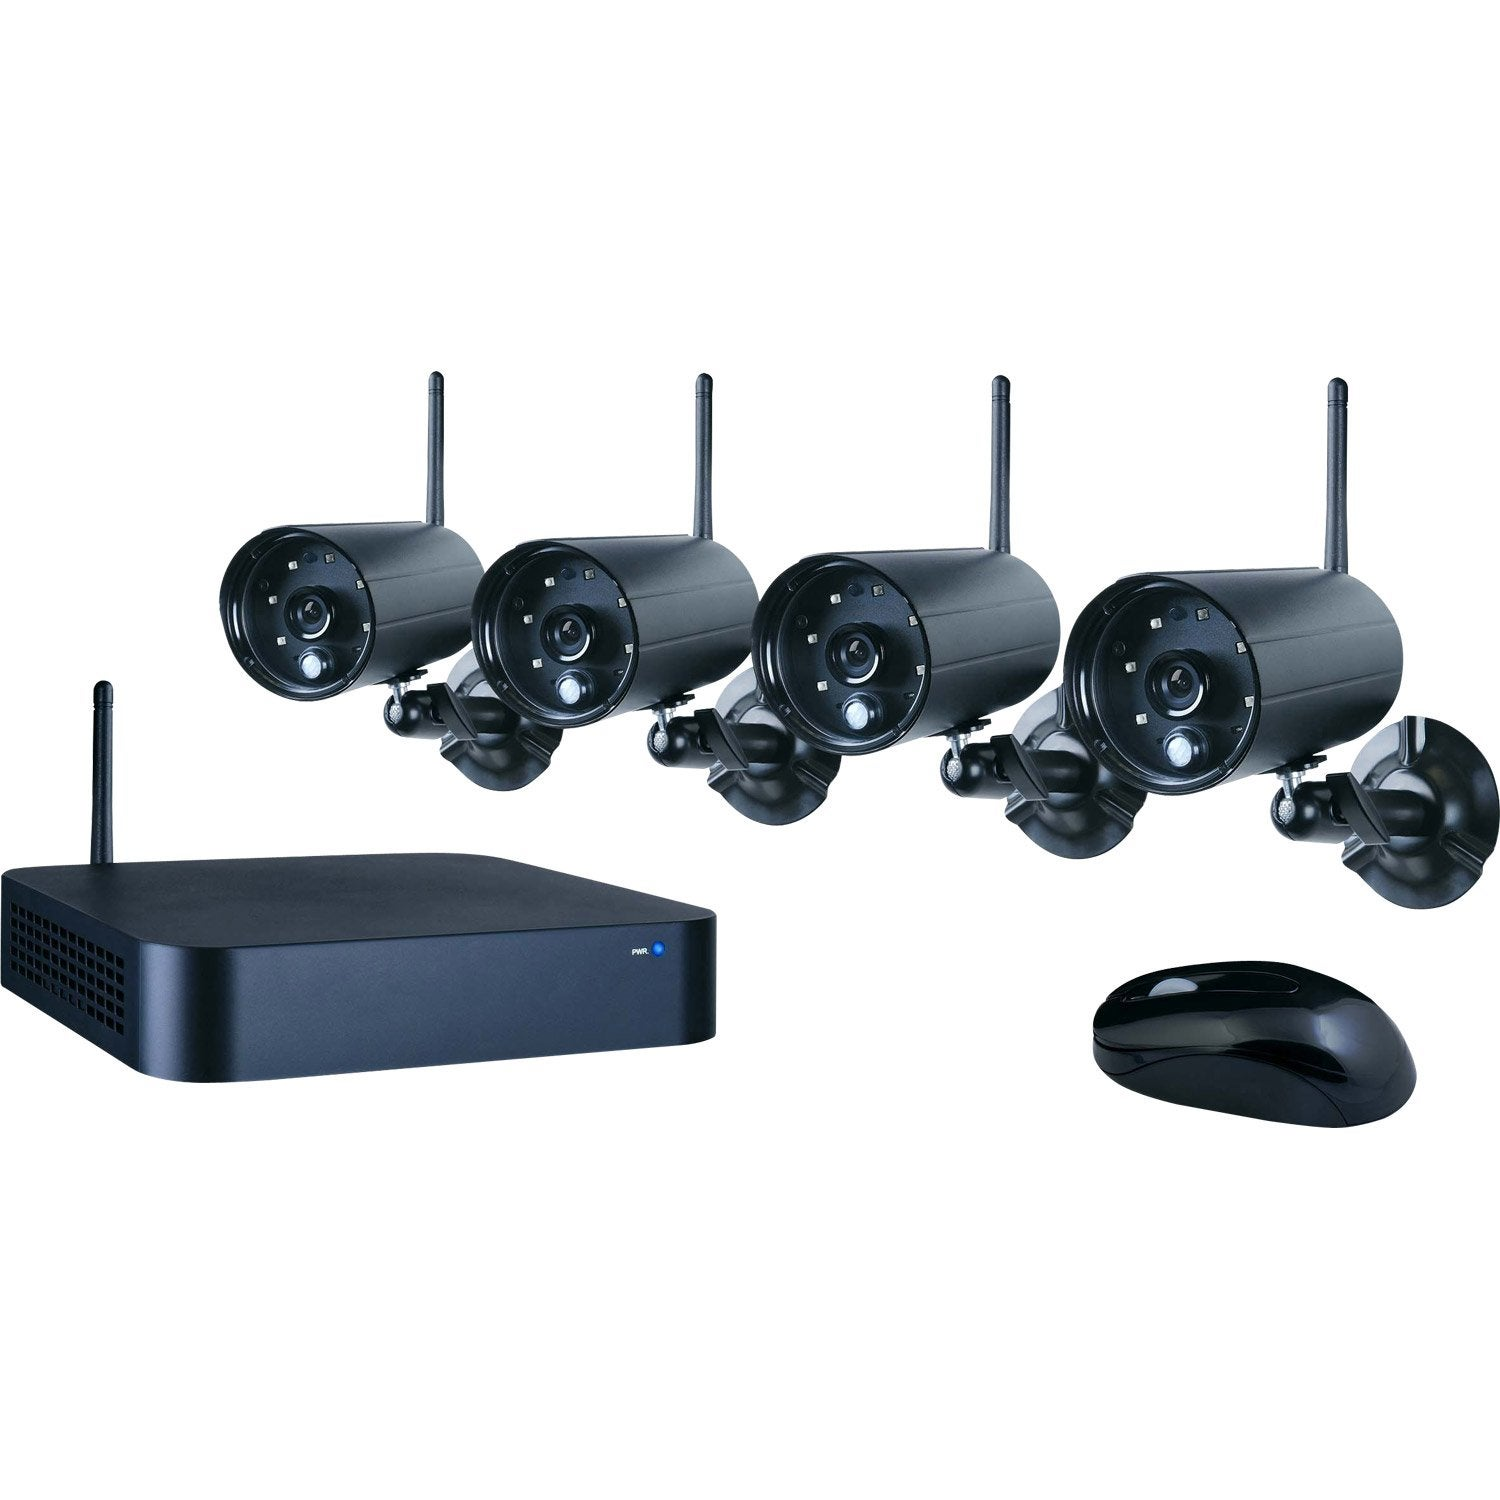 kit de vid osurveillance connect sans fil ext rieur smartwares wdvr740s leroy merlin. Black Bedroom Furniture Sets. Home Design Ideas